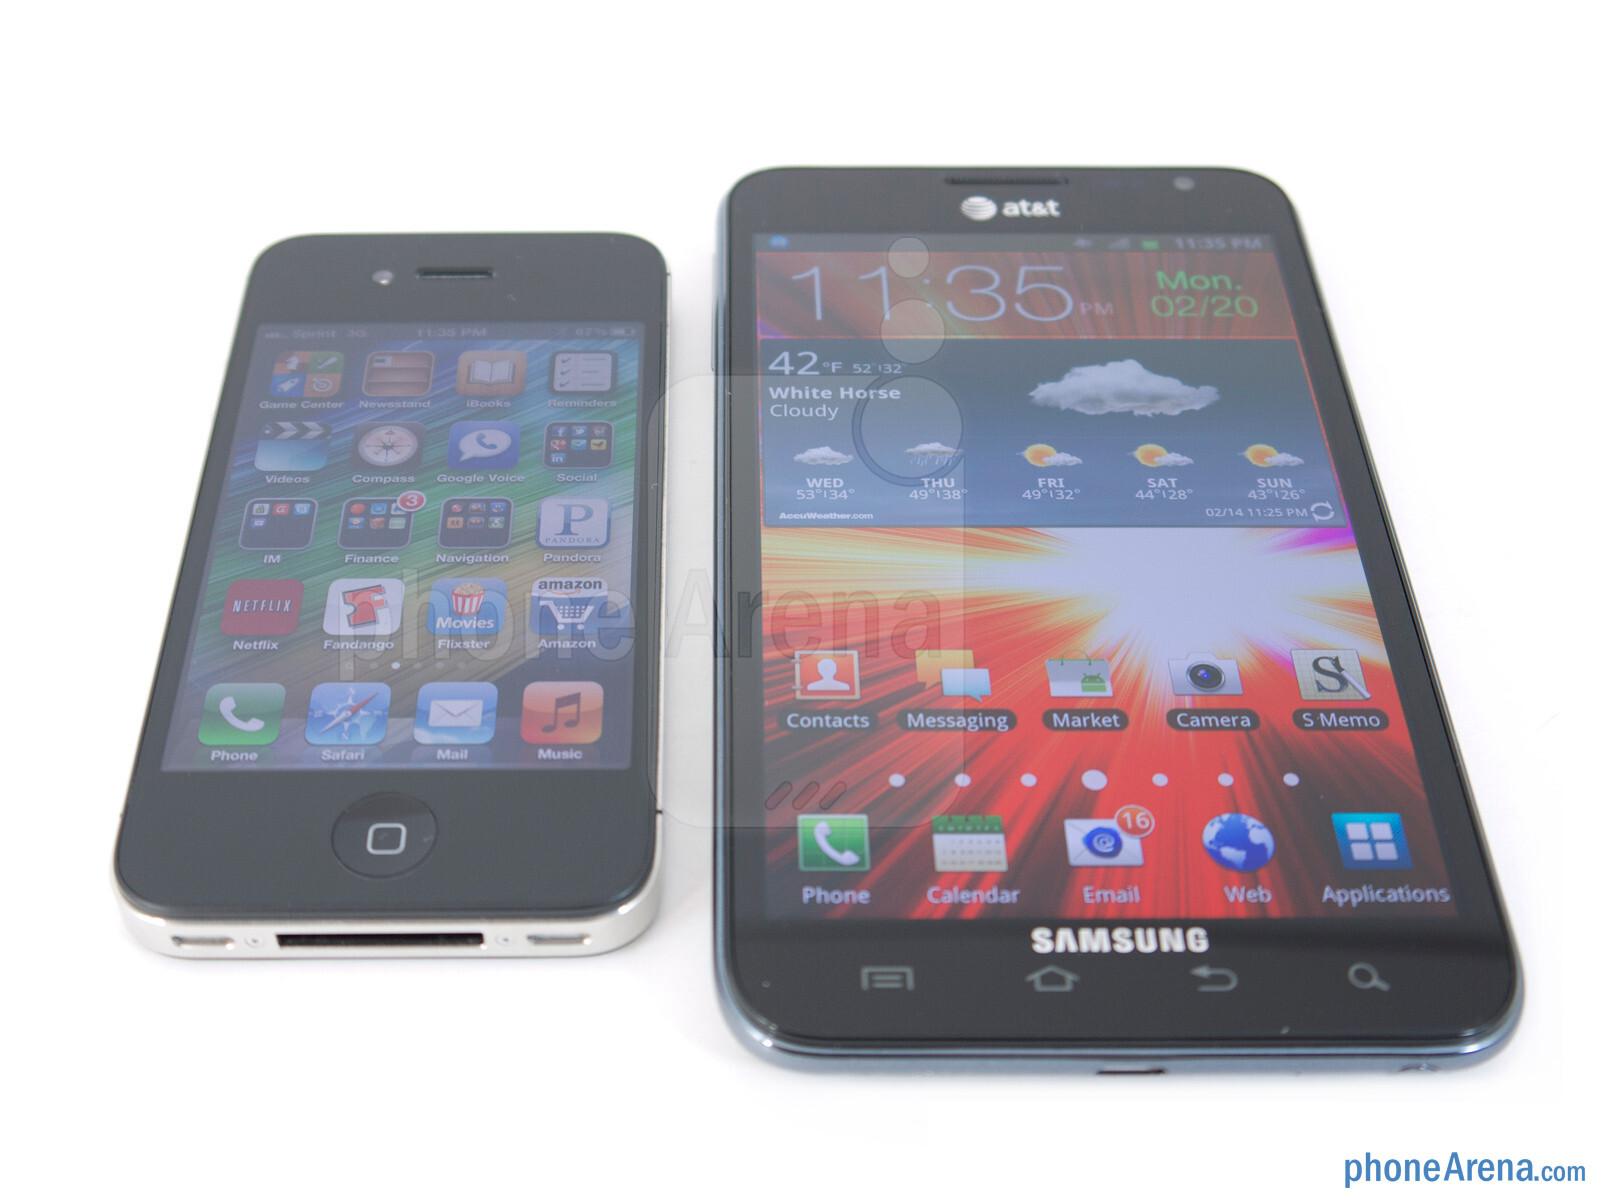 Samsung Galaxy Note LTE vs Apple iPhone 4S